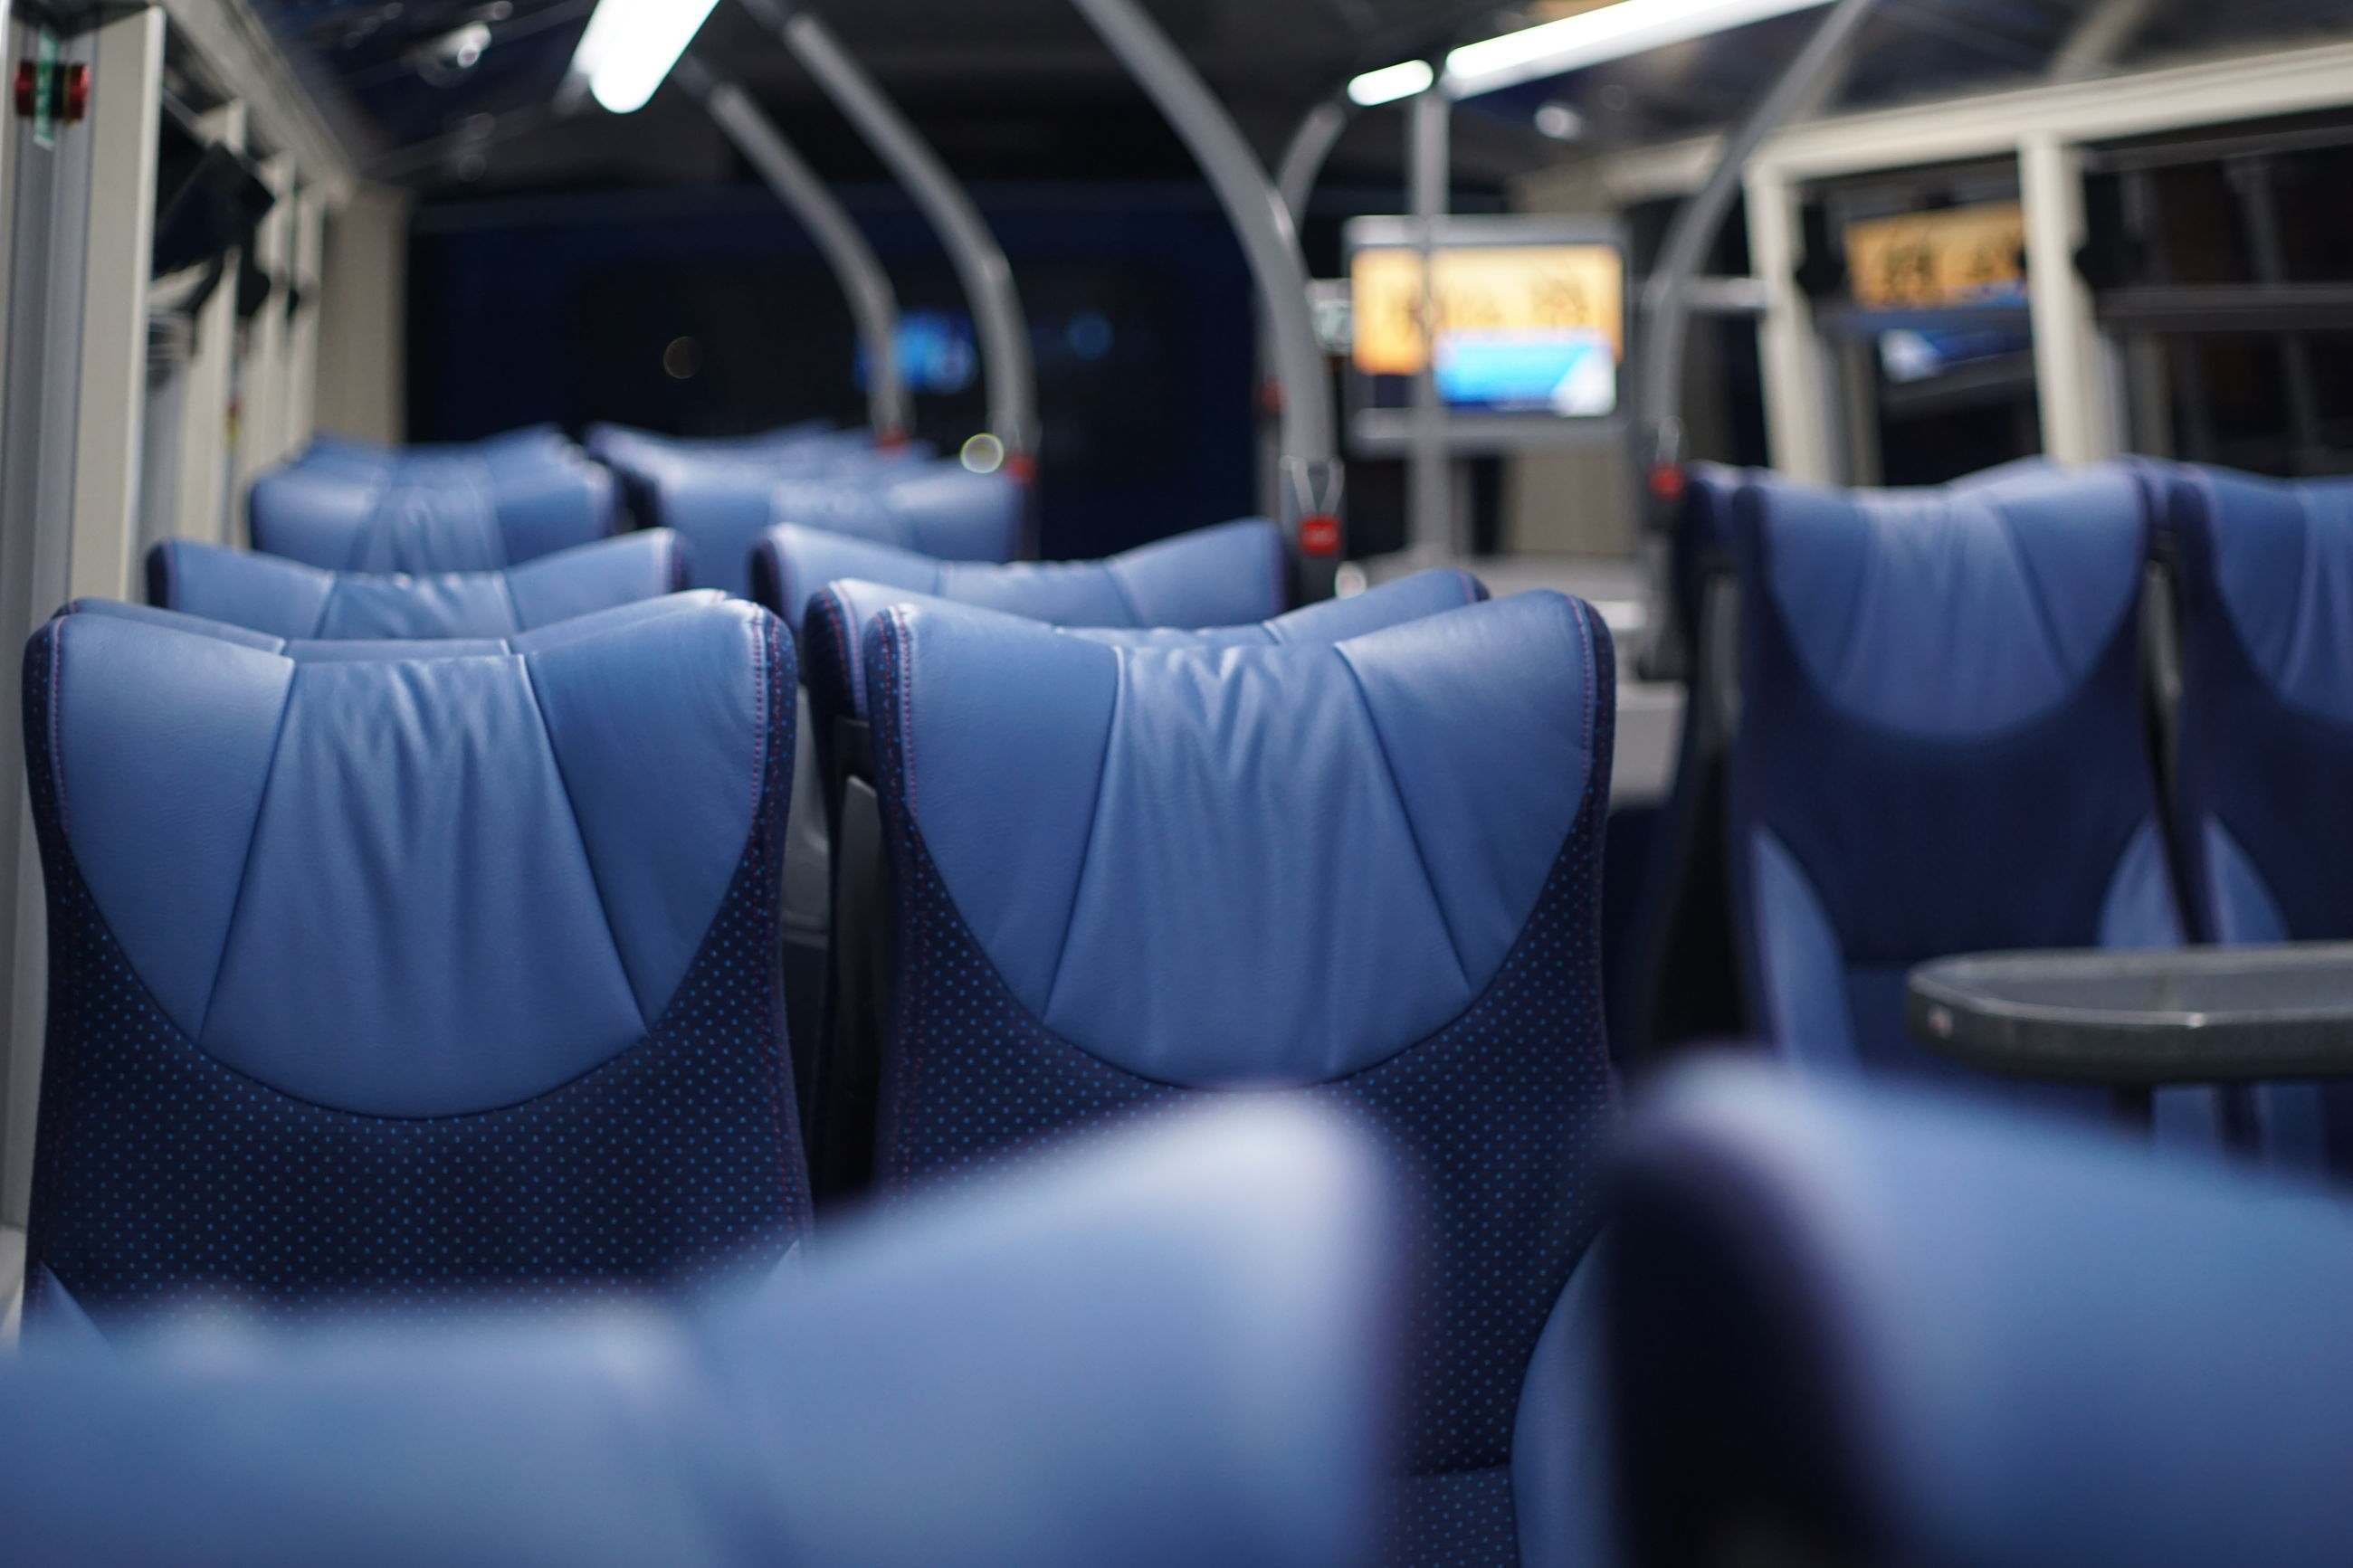 EMPTY SEATS IN TRAIN AT STATION